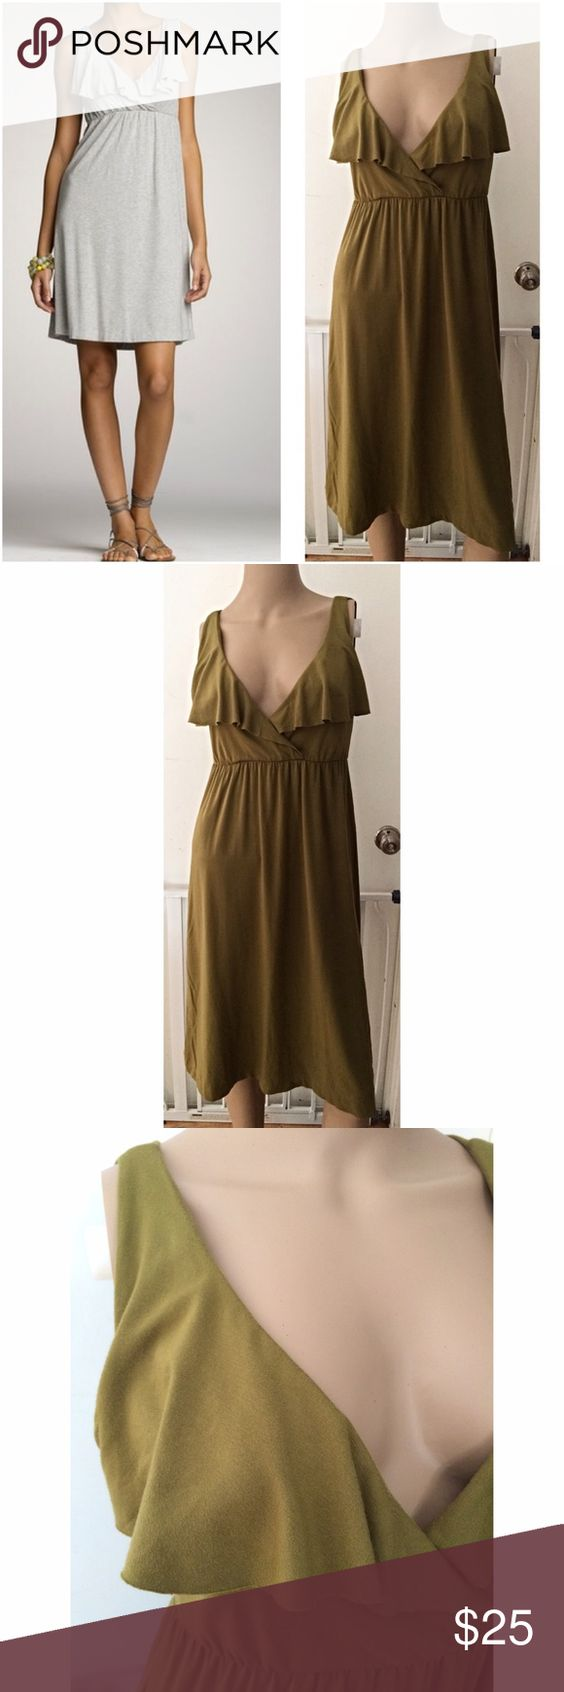 """EUC J. Crew Olive Green Ruffle Neck Dress In great pre-loved condition dress from J. Crew in size x-small, but probably can fit a small too. Has lots of stretch to the dress. In a soft jersey like fabric, in a olive green color. Measure about 37"""" length,12"""" waist not stretch out, 17.5"""" pit to pit. ❌Sorry no modeling or trades. Model pic is same style, but different color. For sale is he GREEN color. Offers welcome. Thank you‼️ J. Crew Dresses Mini"""